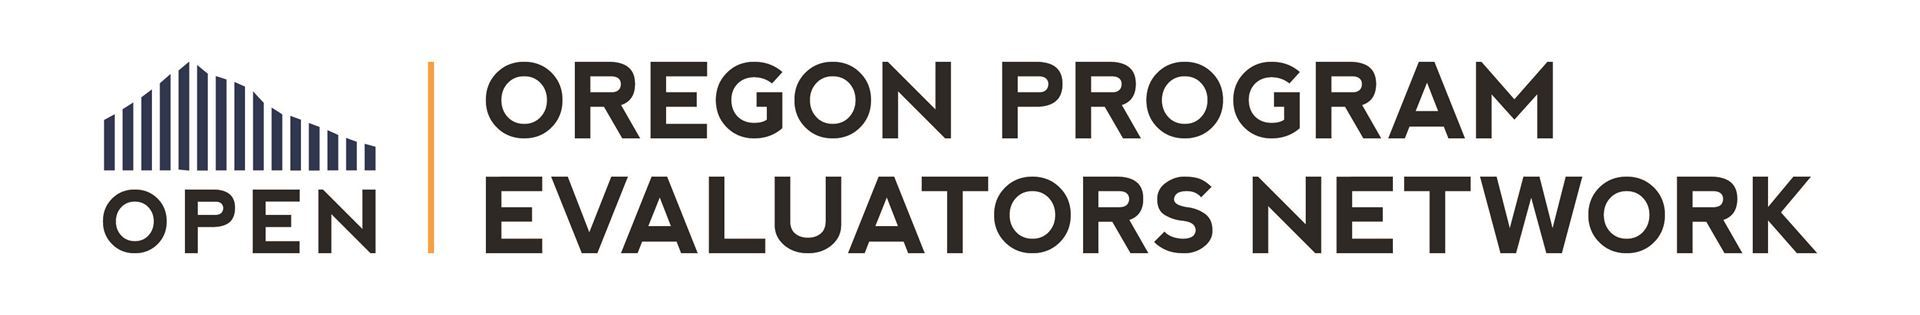 Oregon Program Evaluators Network (OPEN) logo